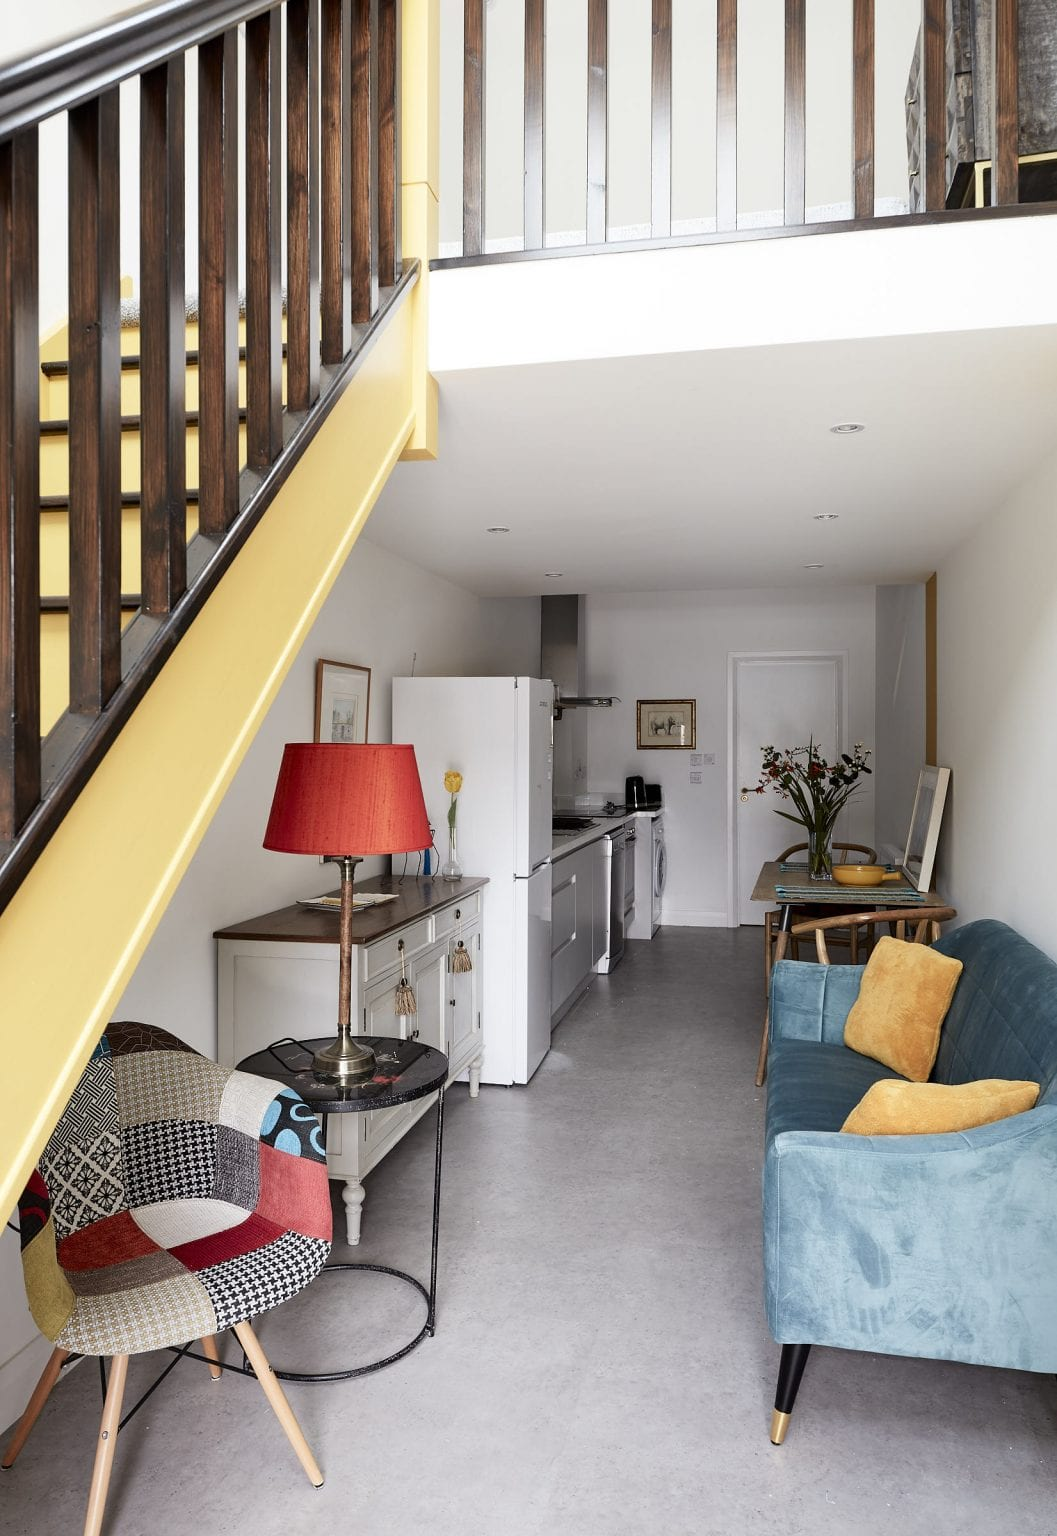 Converted into a room to rent space by Kitt Interiors, Interior Design Dublin. Entrance view.